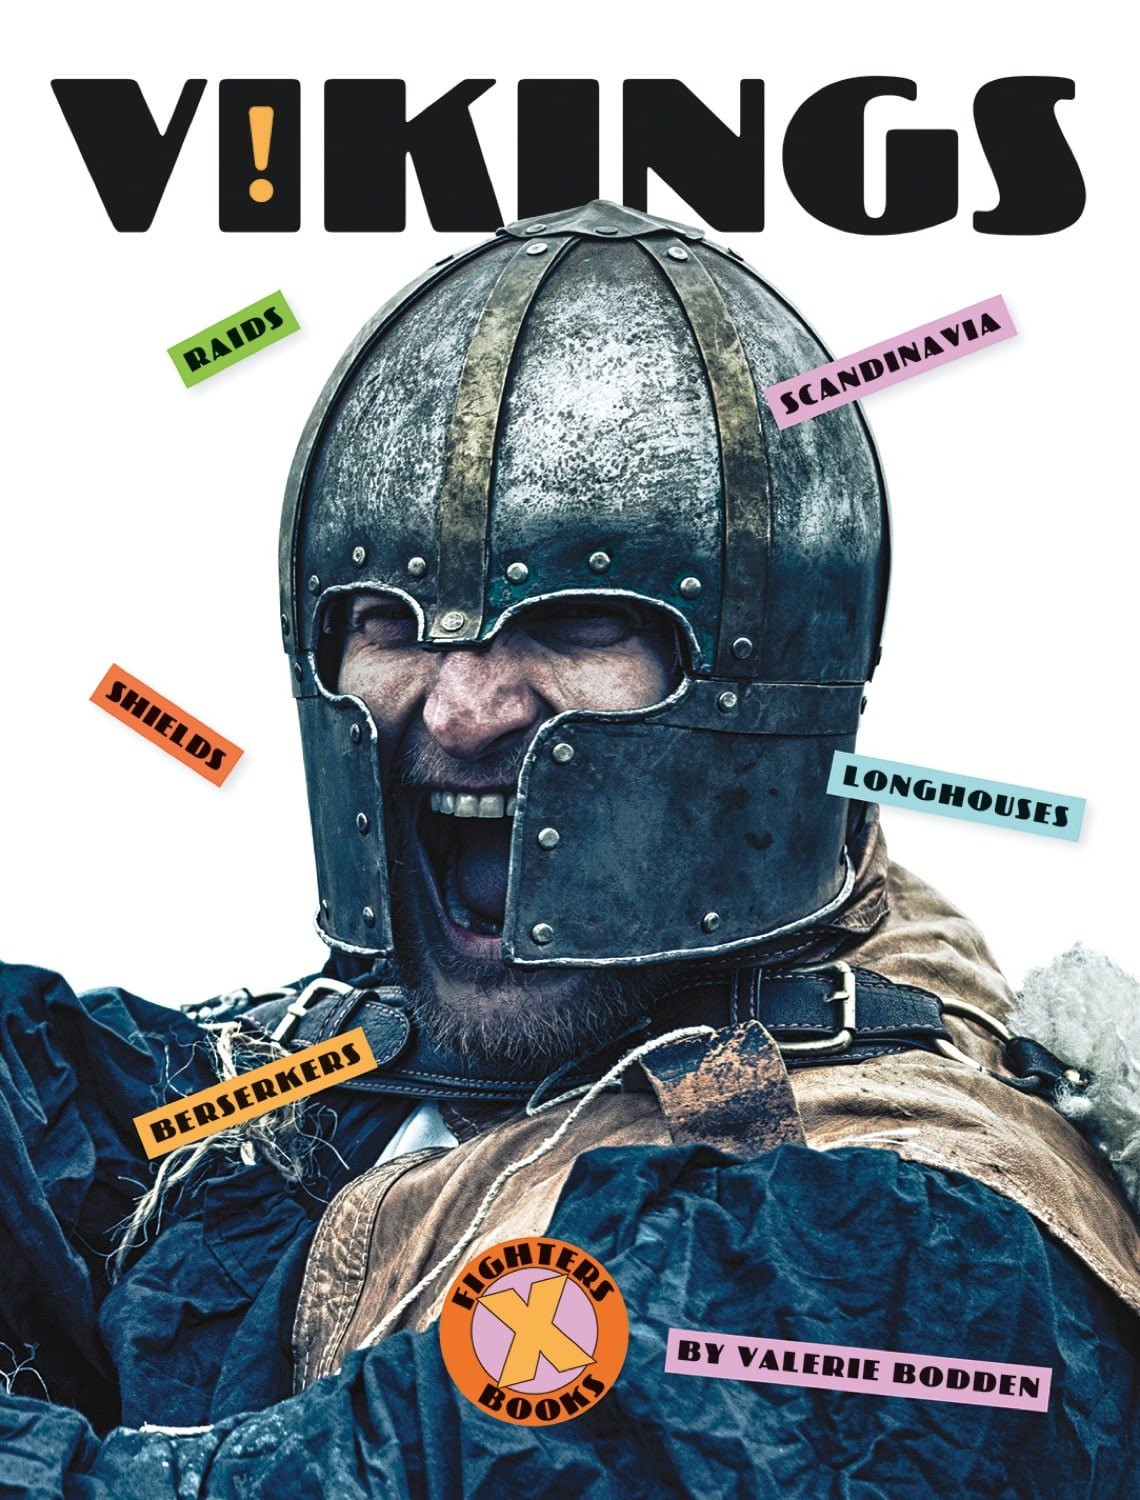 X-Books: Fighters: Vikings